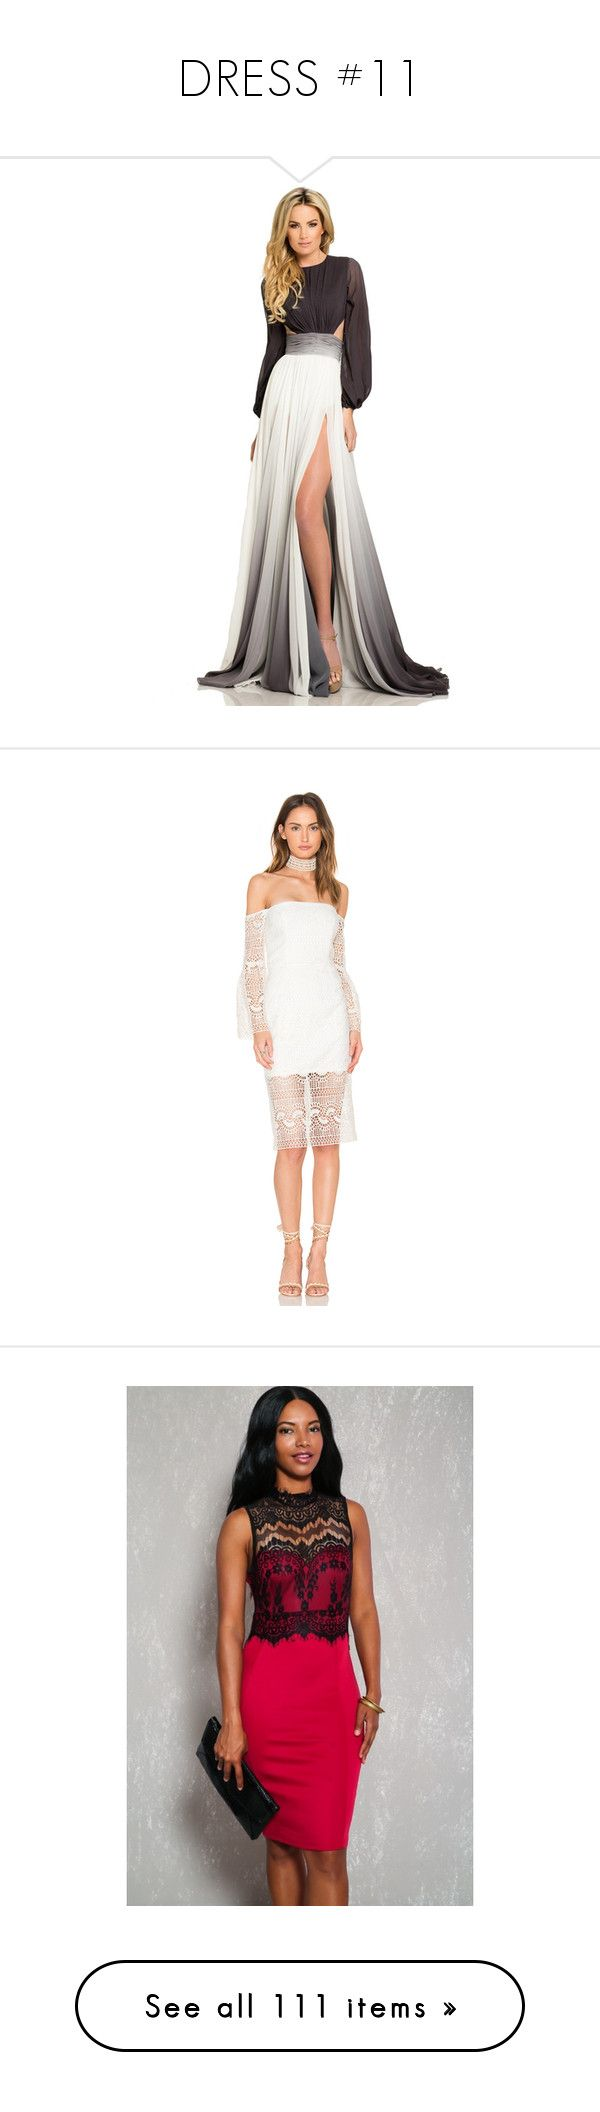 """""""DRESS #11"""" by missk2blue ❤ liked on Polyvore featuring dresses, gowns, formal dresses, white evening gowns, evening dresses, white evening dresses, long evening dresses, white formal gown, lacy dress and zip back dress"""